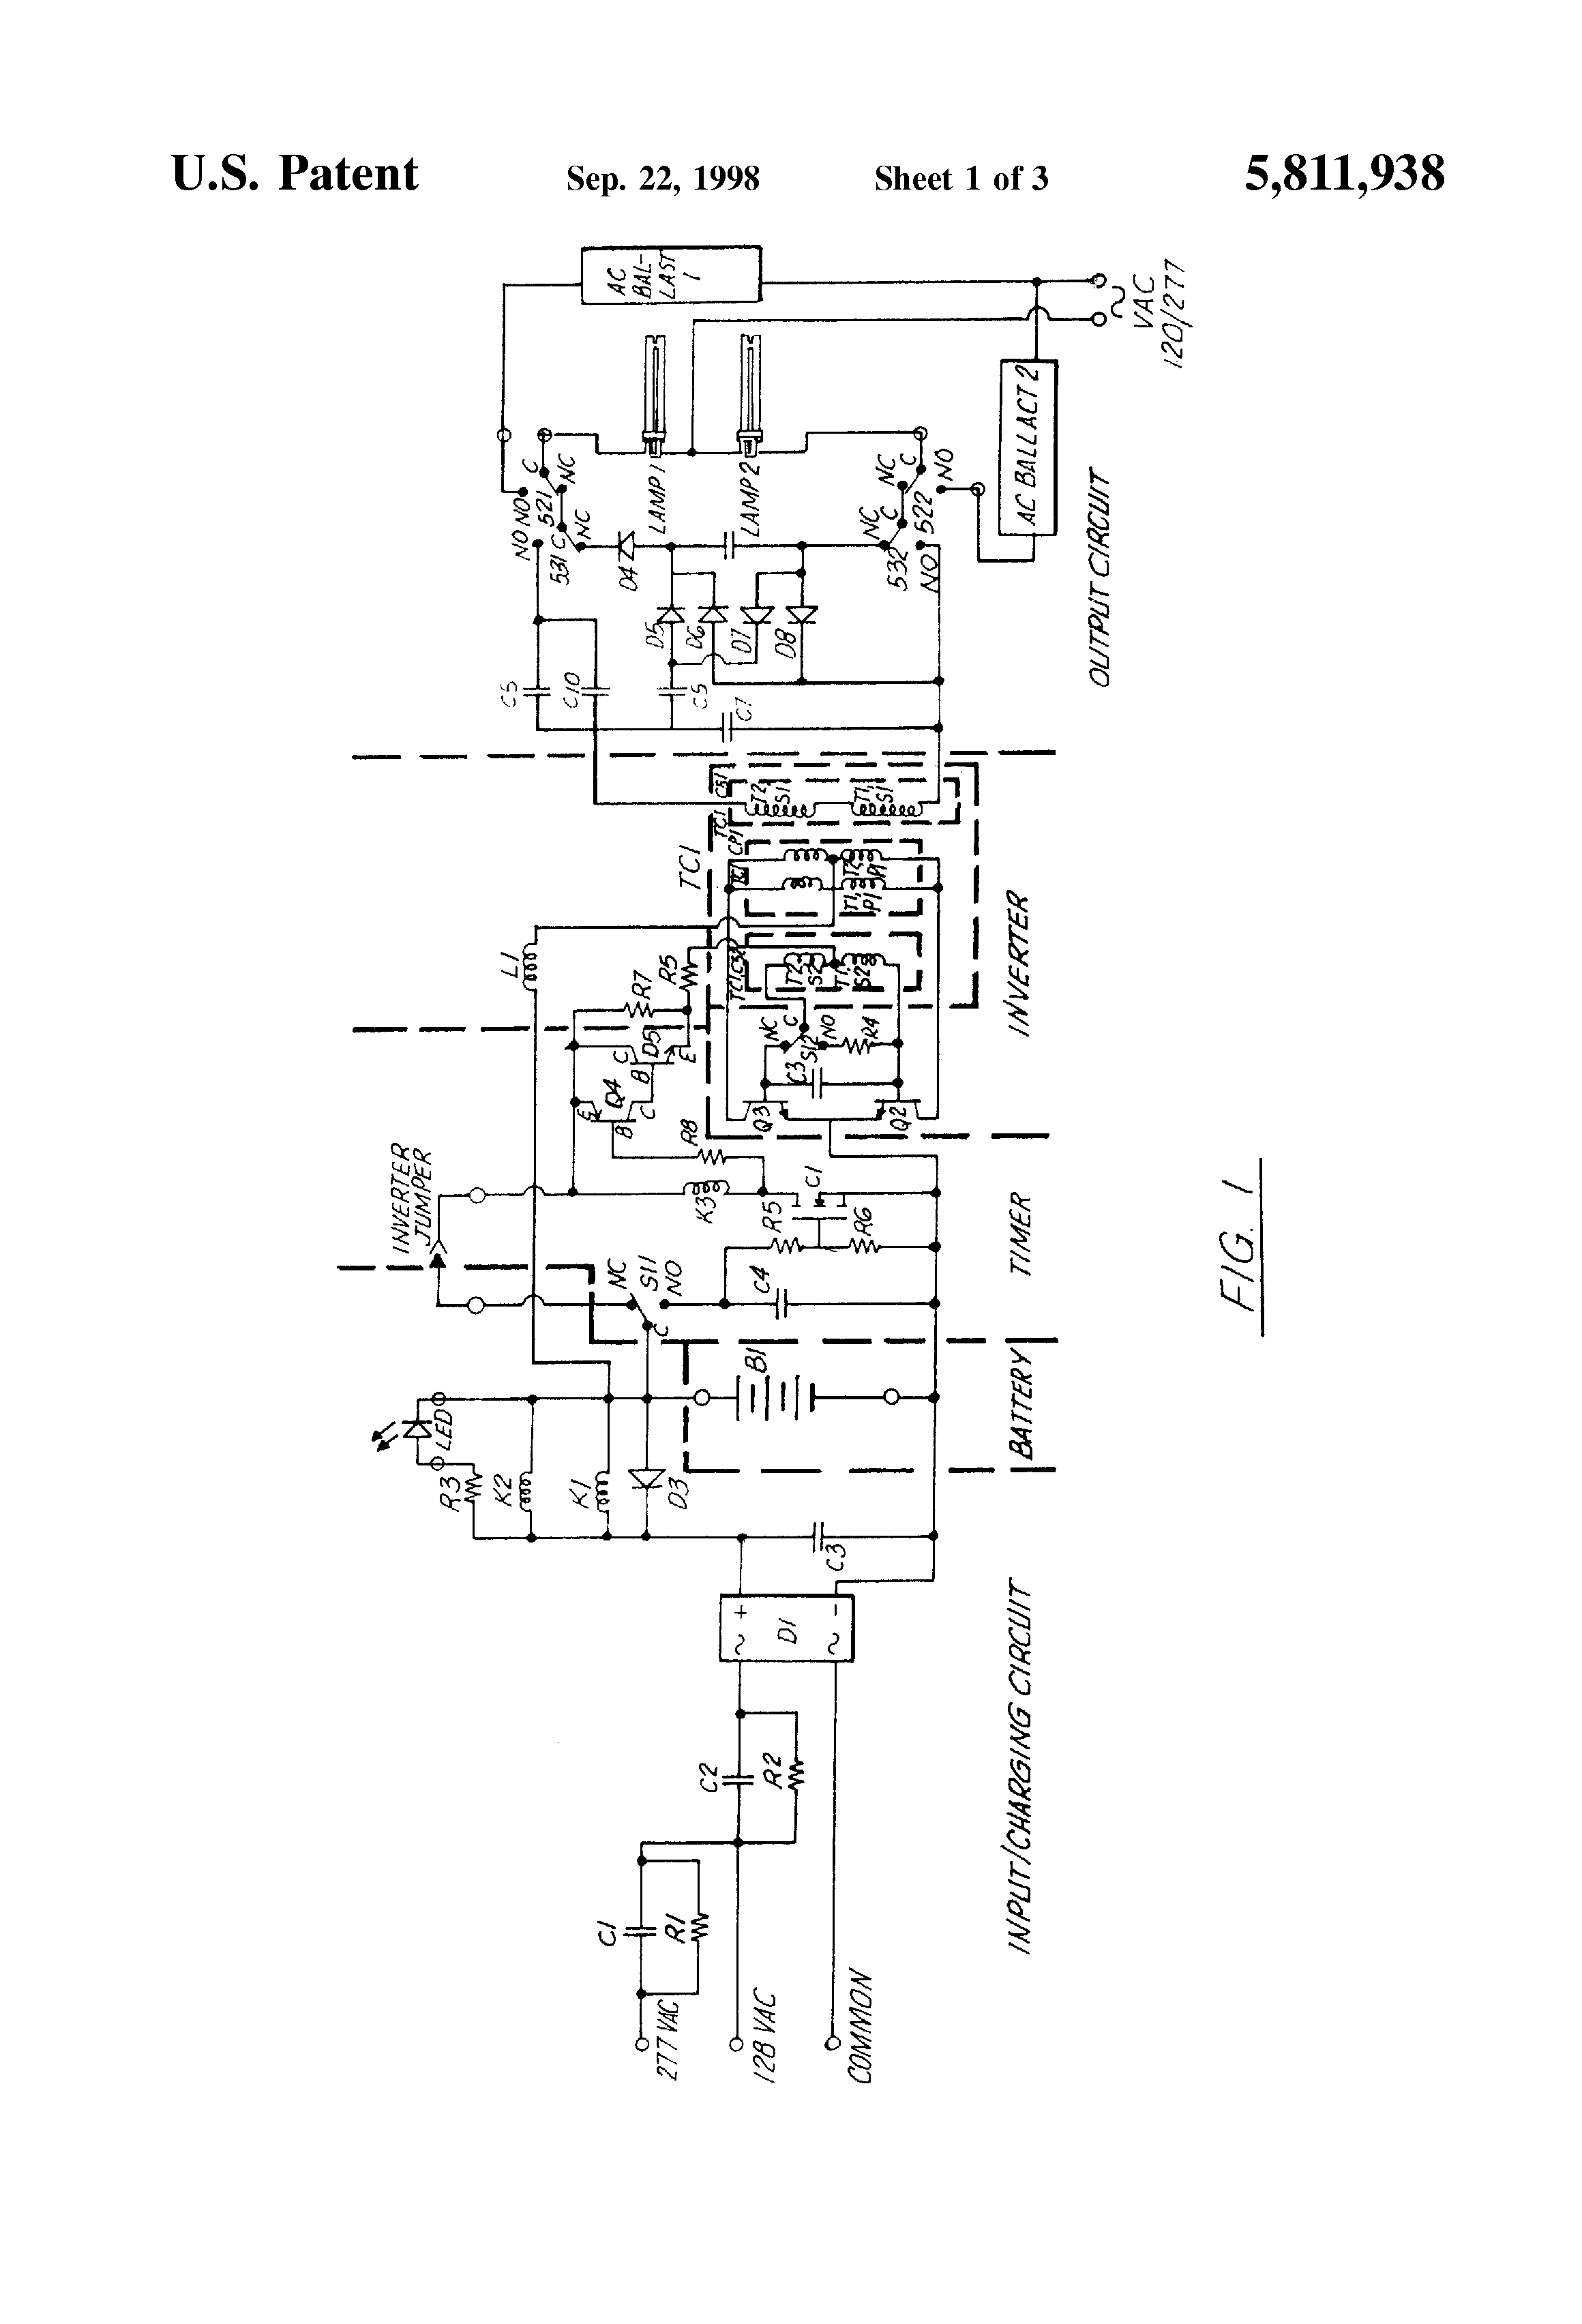 Wiring Diagram For Emergency Ballast The Wiring Diagram